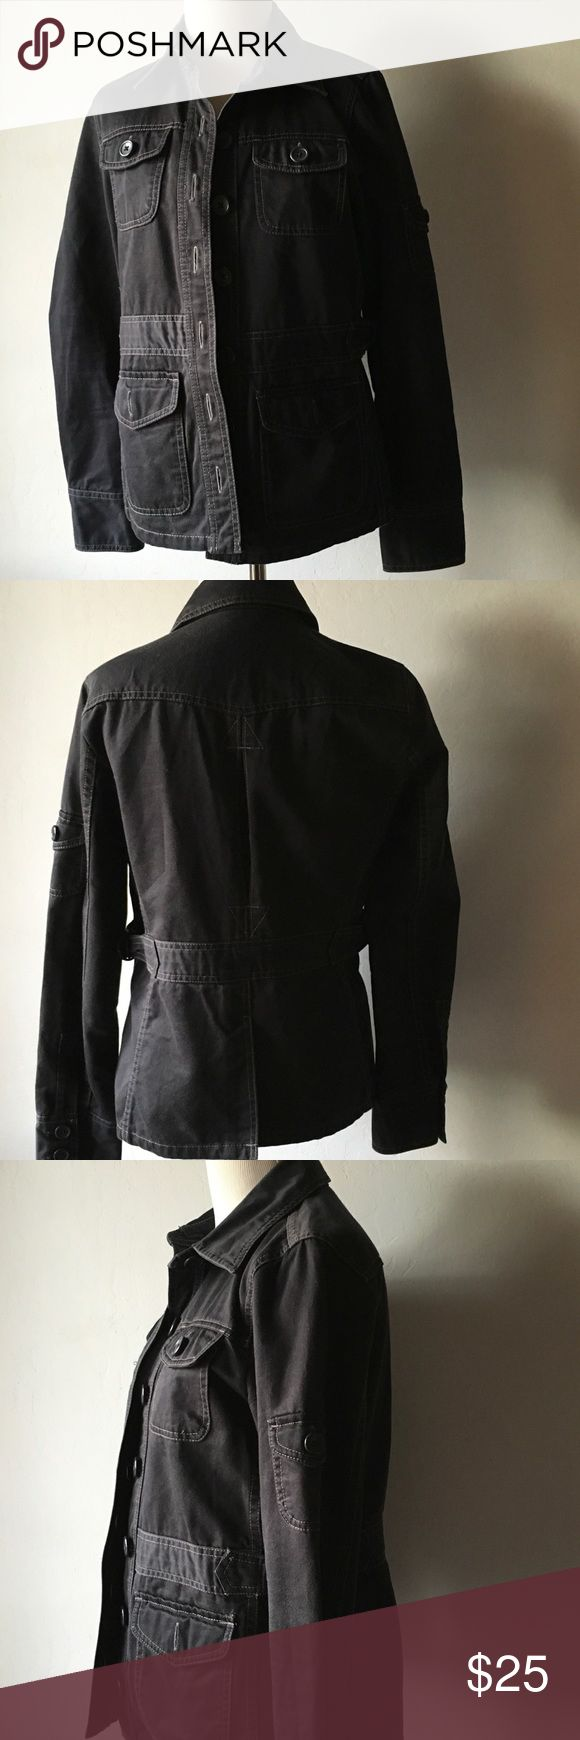 J.crew black military jacket Excellent condition J. Crew Jackets & Coats Utility Jackets